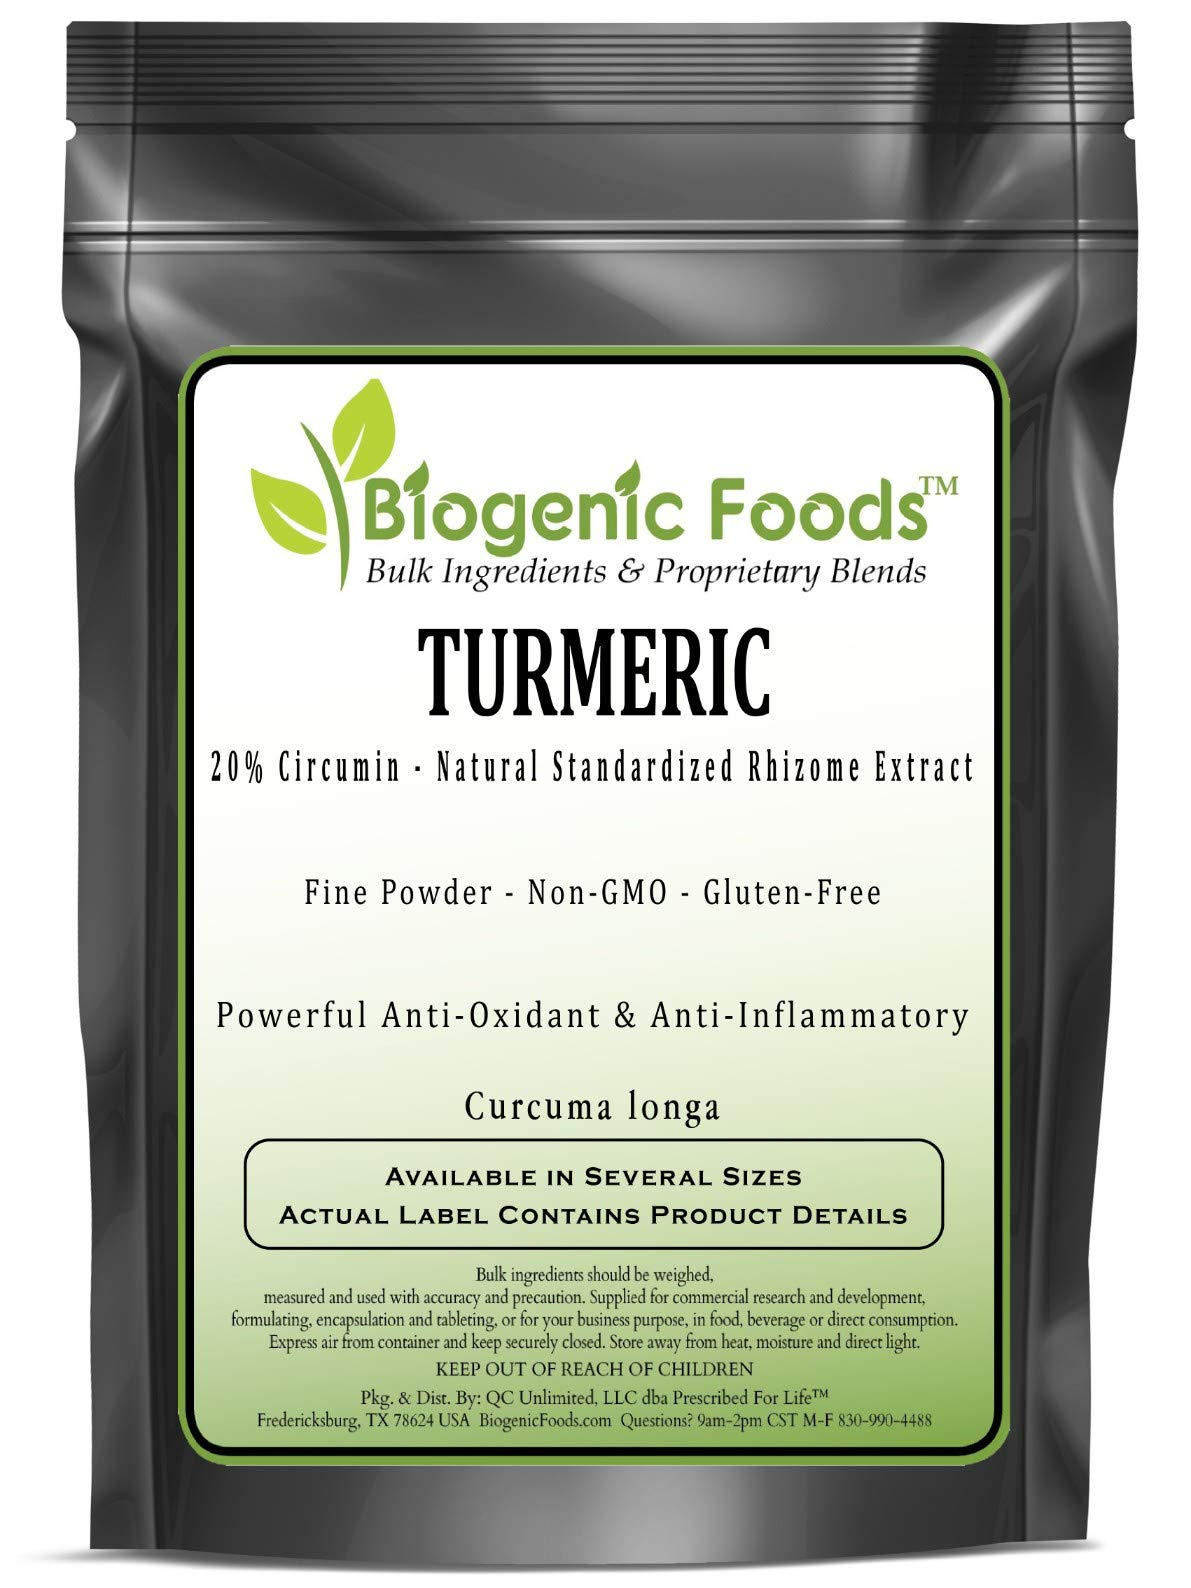 Turmeric - 20% Circumin - Natural Standardized Rhizome Fine Powder Extract (Curcuma Longa), 2 kg